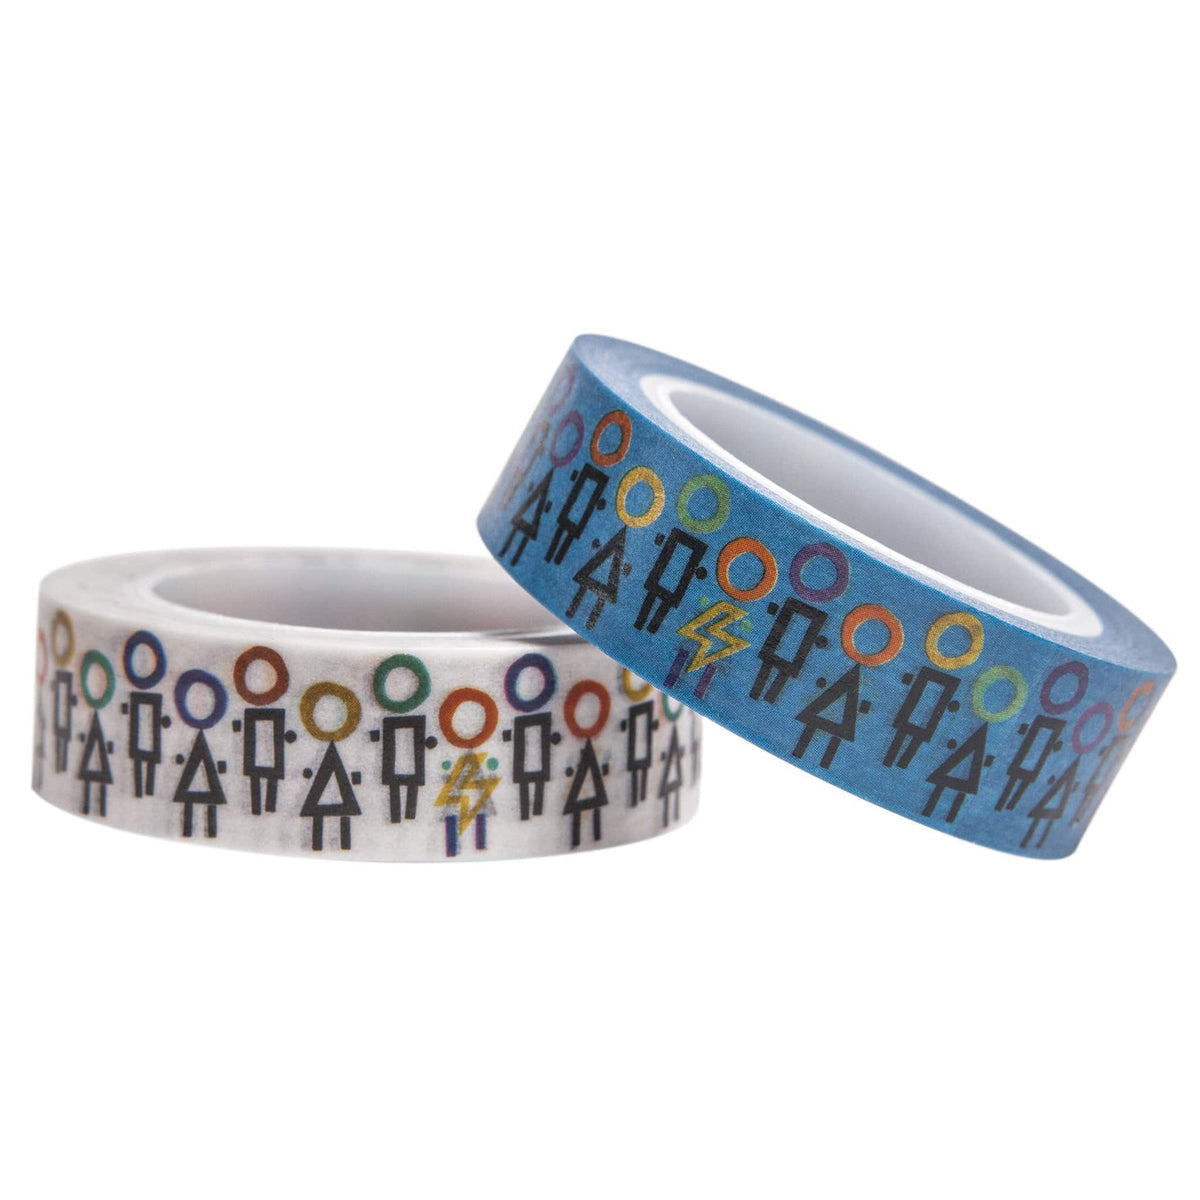 357c9c748 Yoobi x i am OTHER Washi Tape